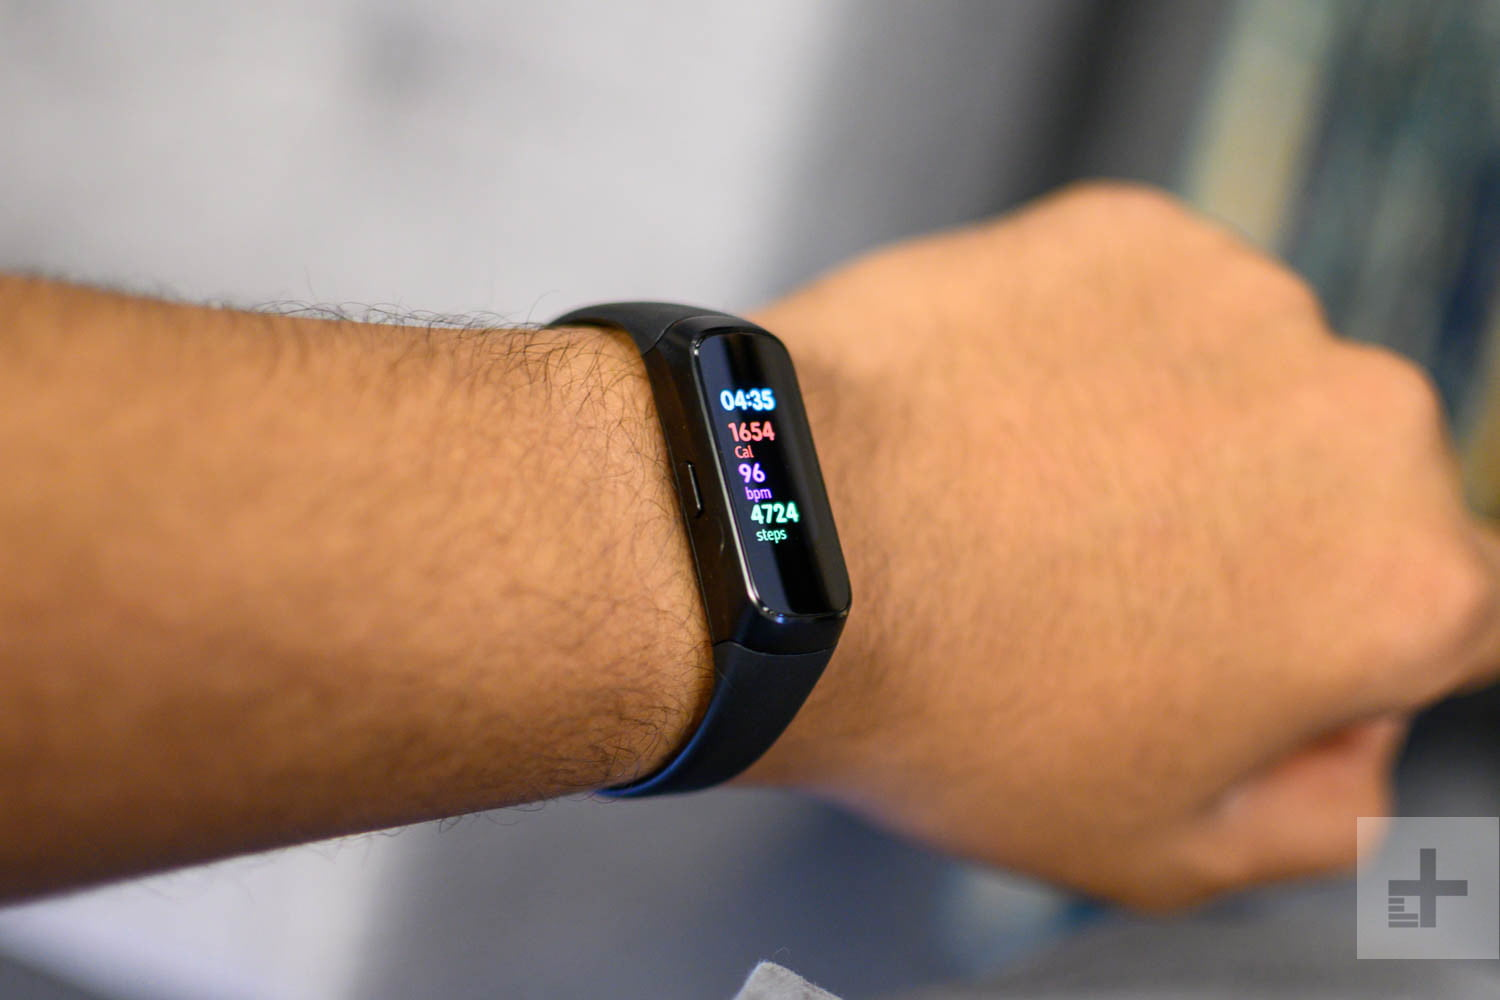 Samsung Galaxy Fit Hands on Review: A $99 Fitness Tracker